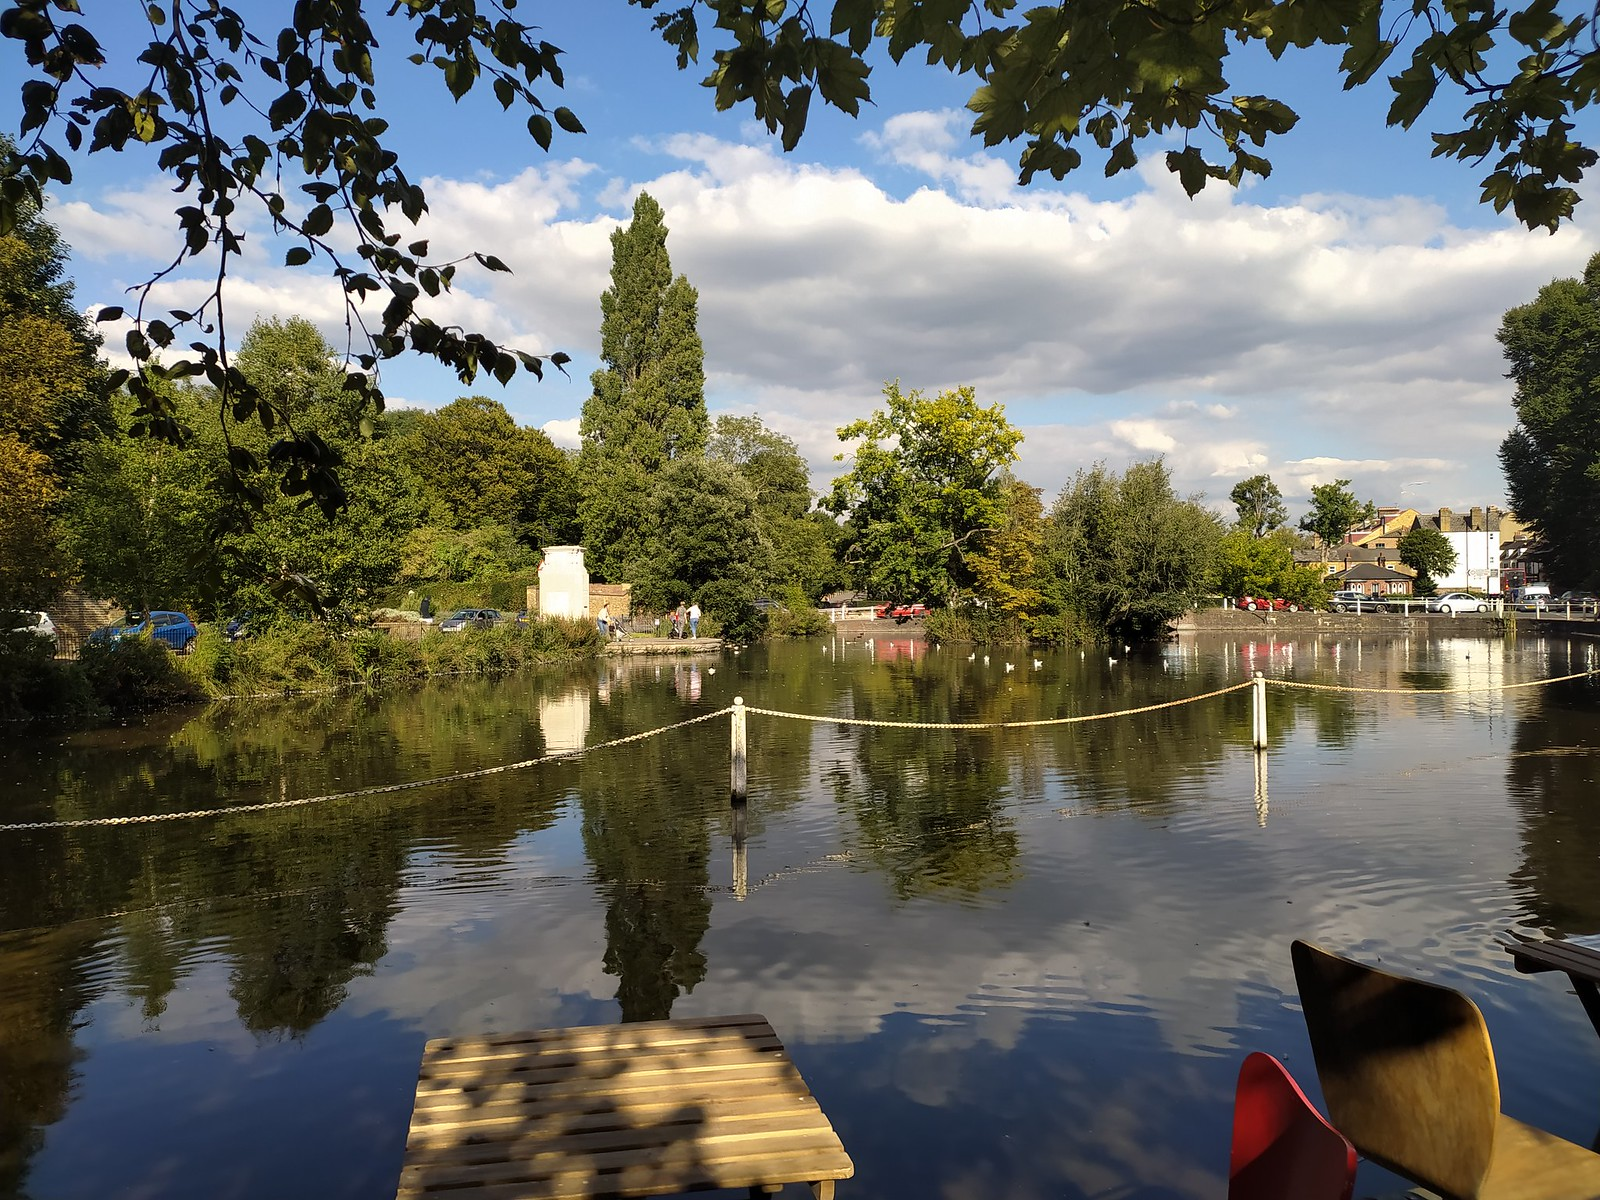 View from the cafe overlooking Carshalton Ponds